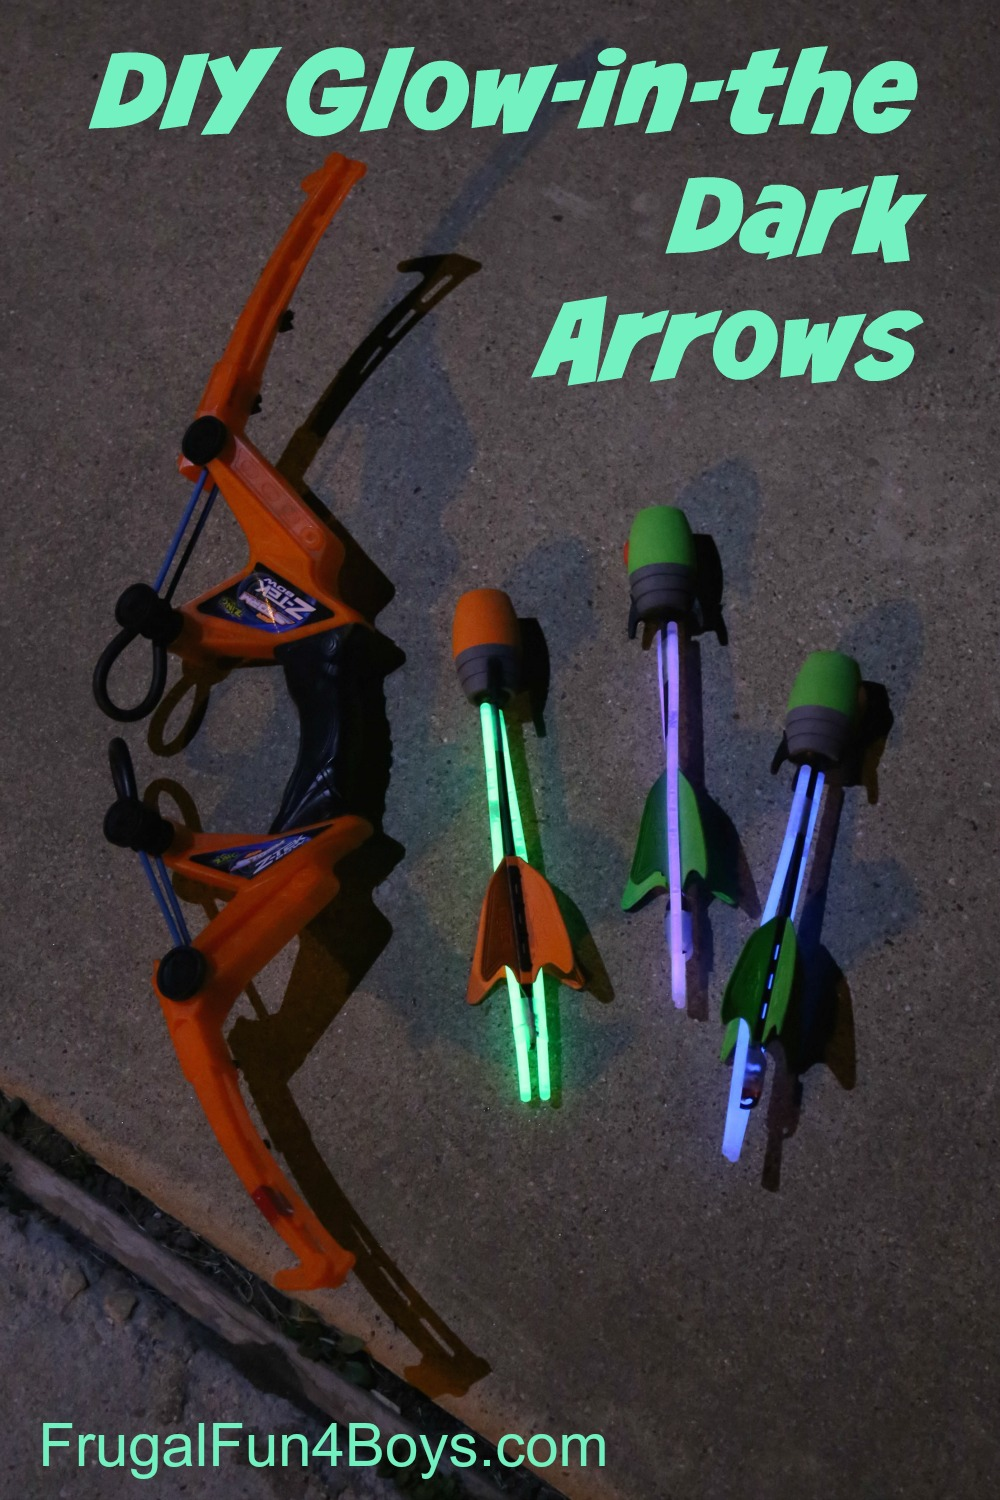 Make Your Own Glow-in-the-Dark Arrows - Works great with a Z Tech bow. Family fun idea!